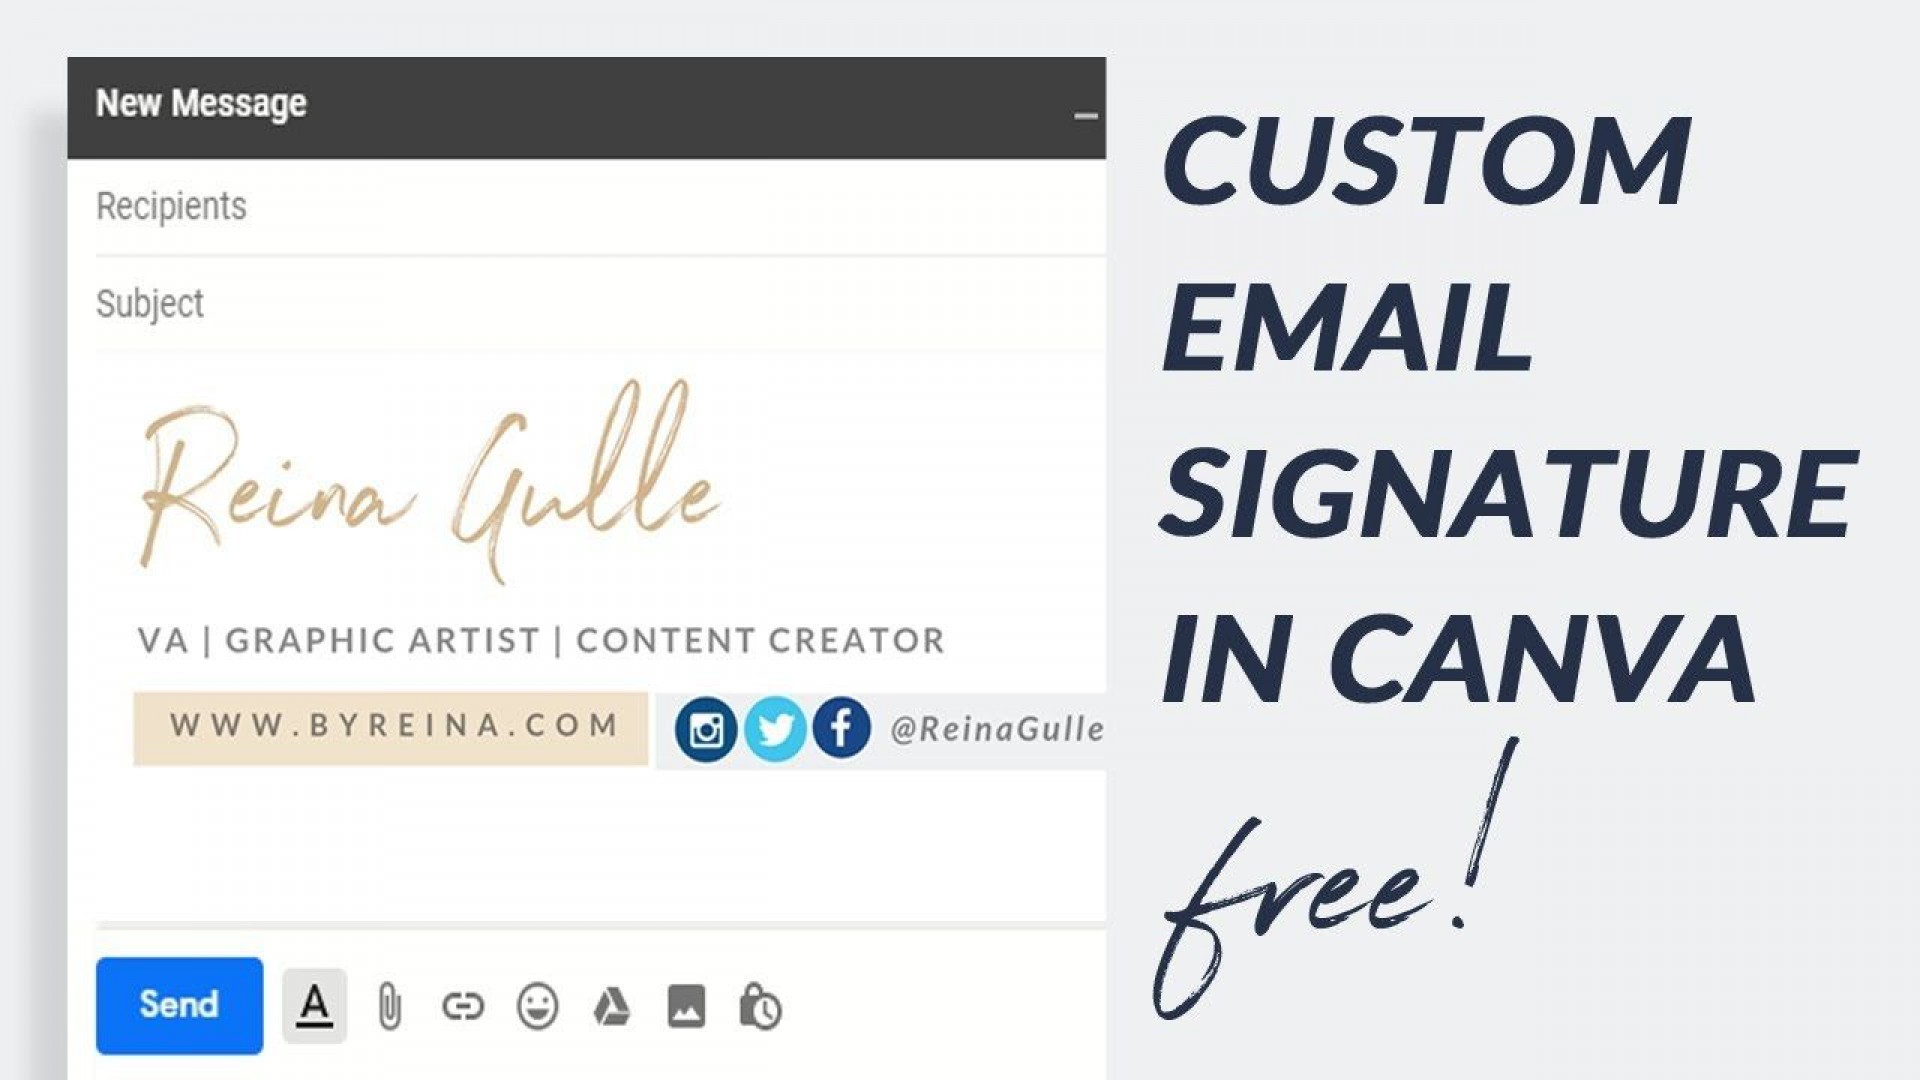 008 Stunning Professional Email Signature Template Image  Free Html Download1920